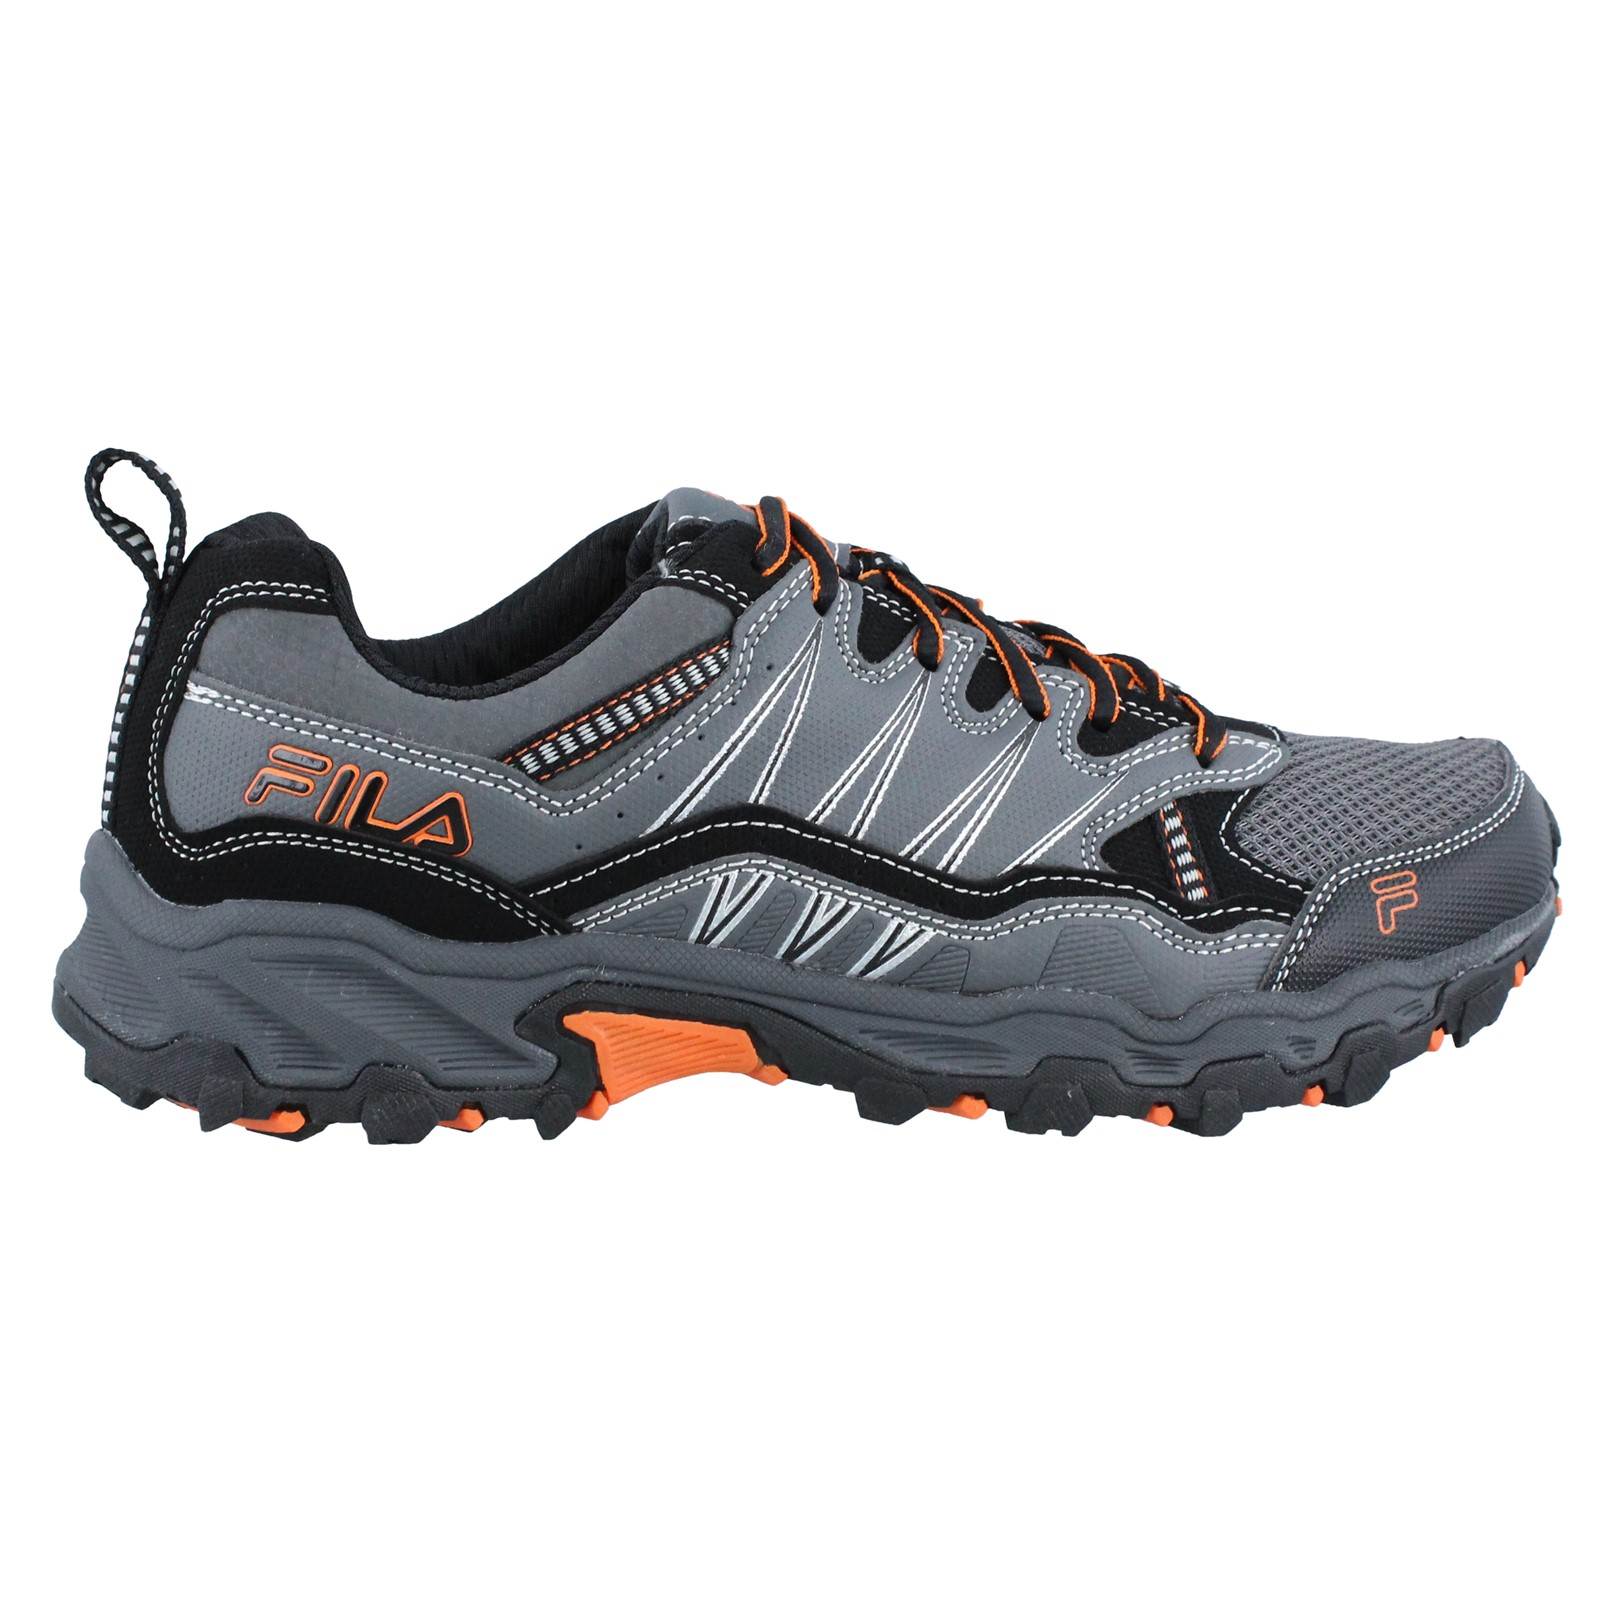 Men's Fila, At Peake 16 Trail Running Shoe Wide Wdith